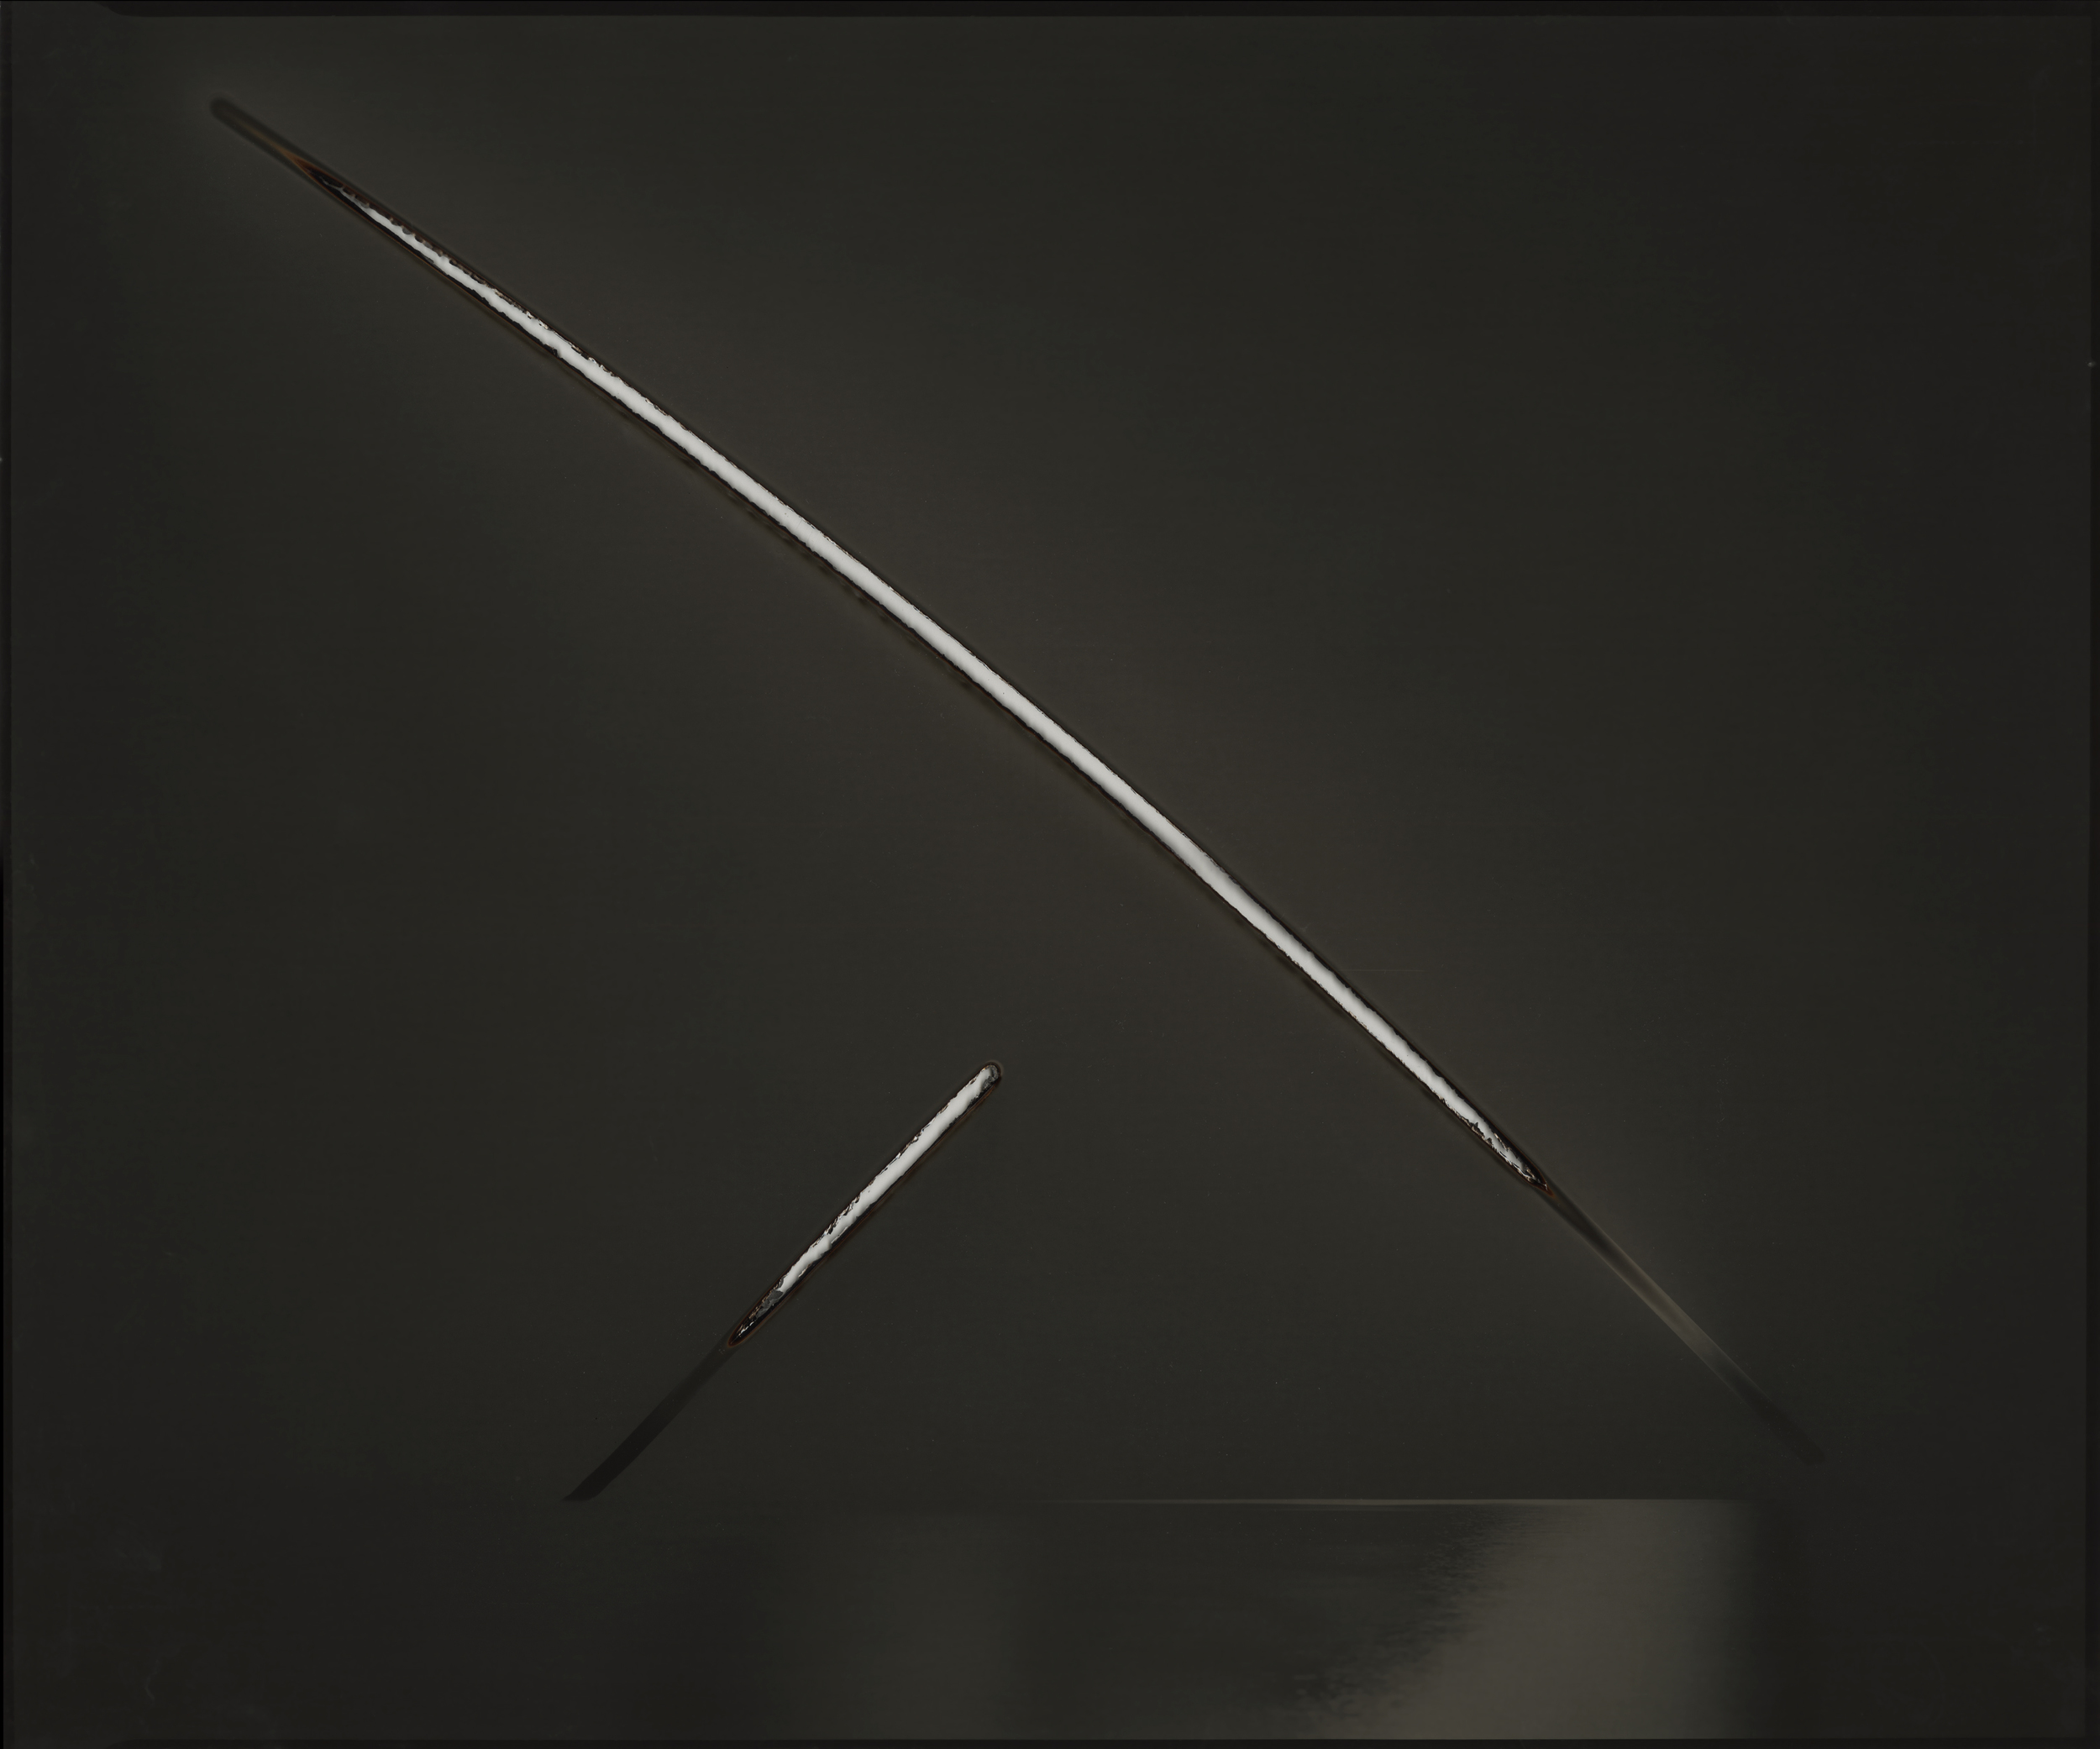 Heliograph #25, 2013, 20 x 24 inches